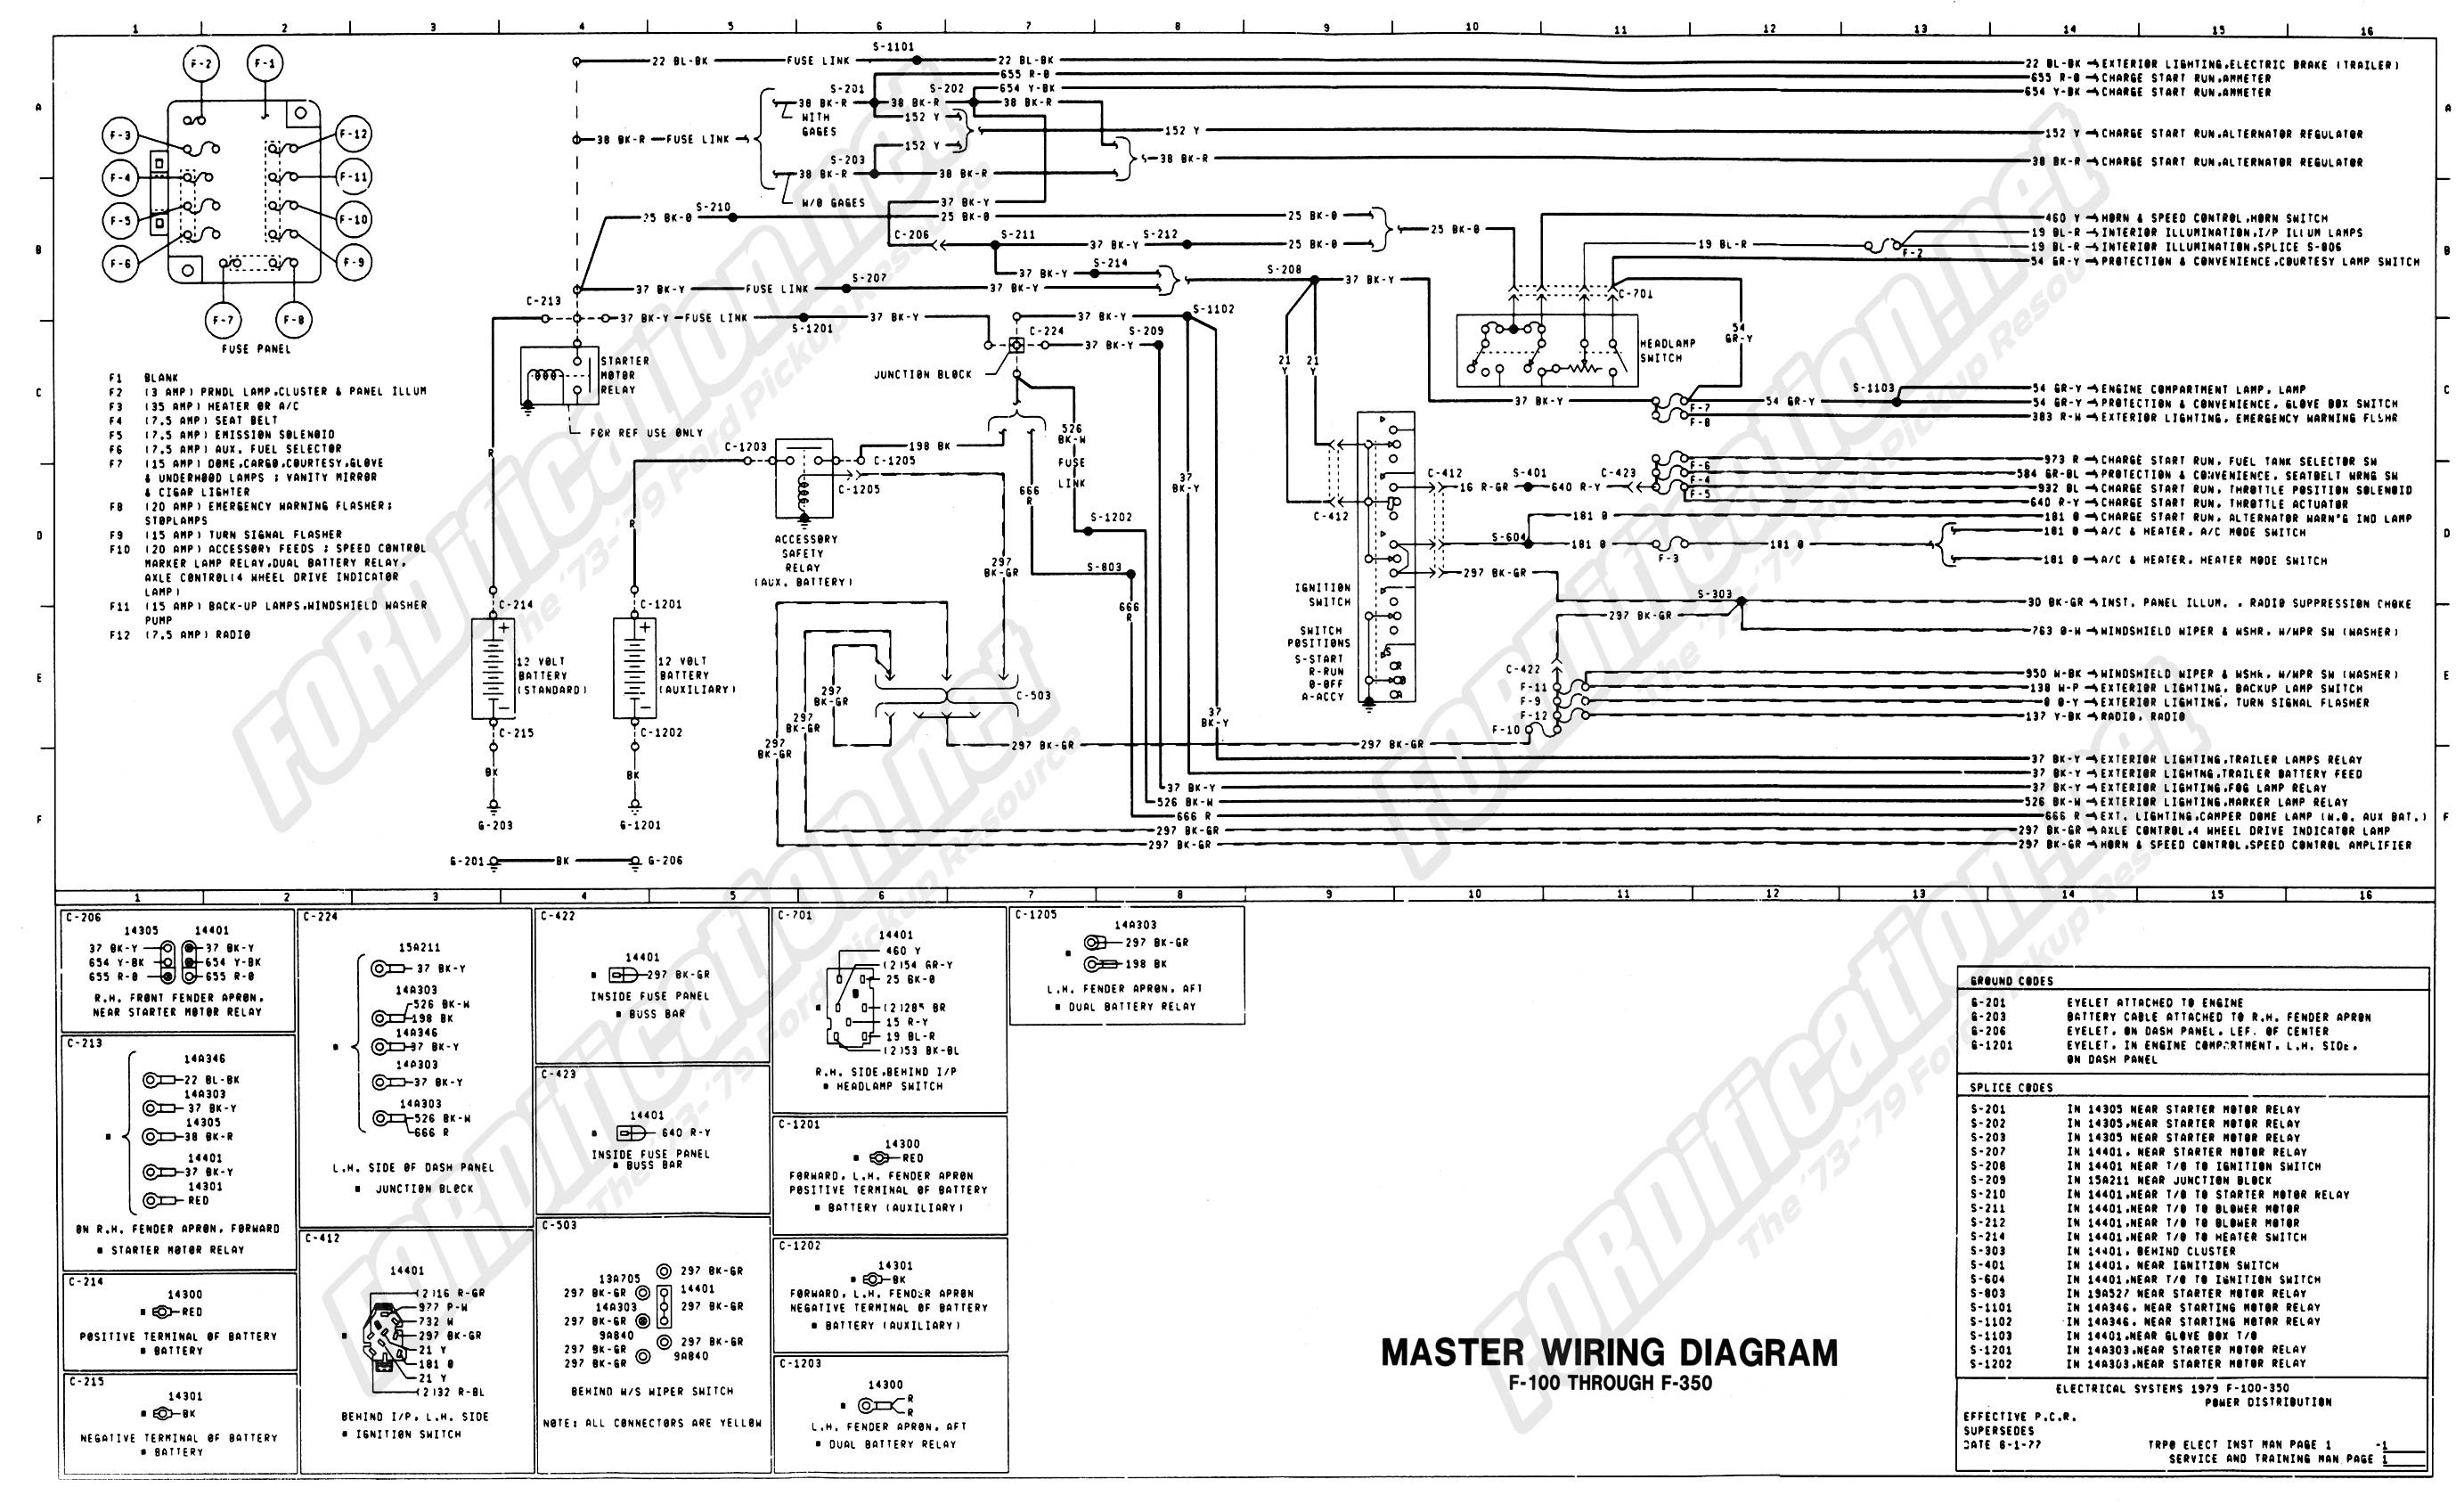 2006 Jeep Liberty Wiring Diagram E340 ford F 1 Wiring Diagram Of 2006 Jeep Liberty Wiring Diagram